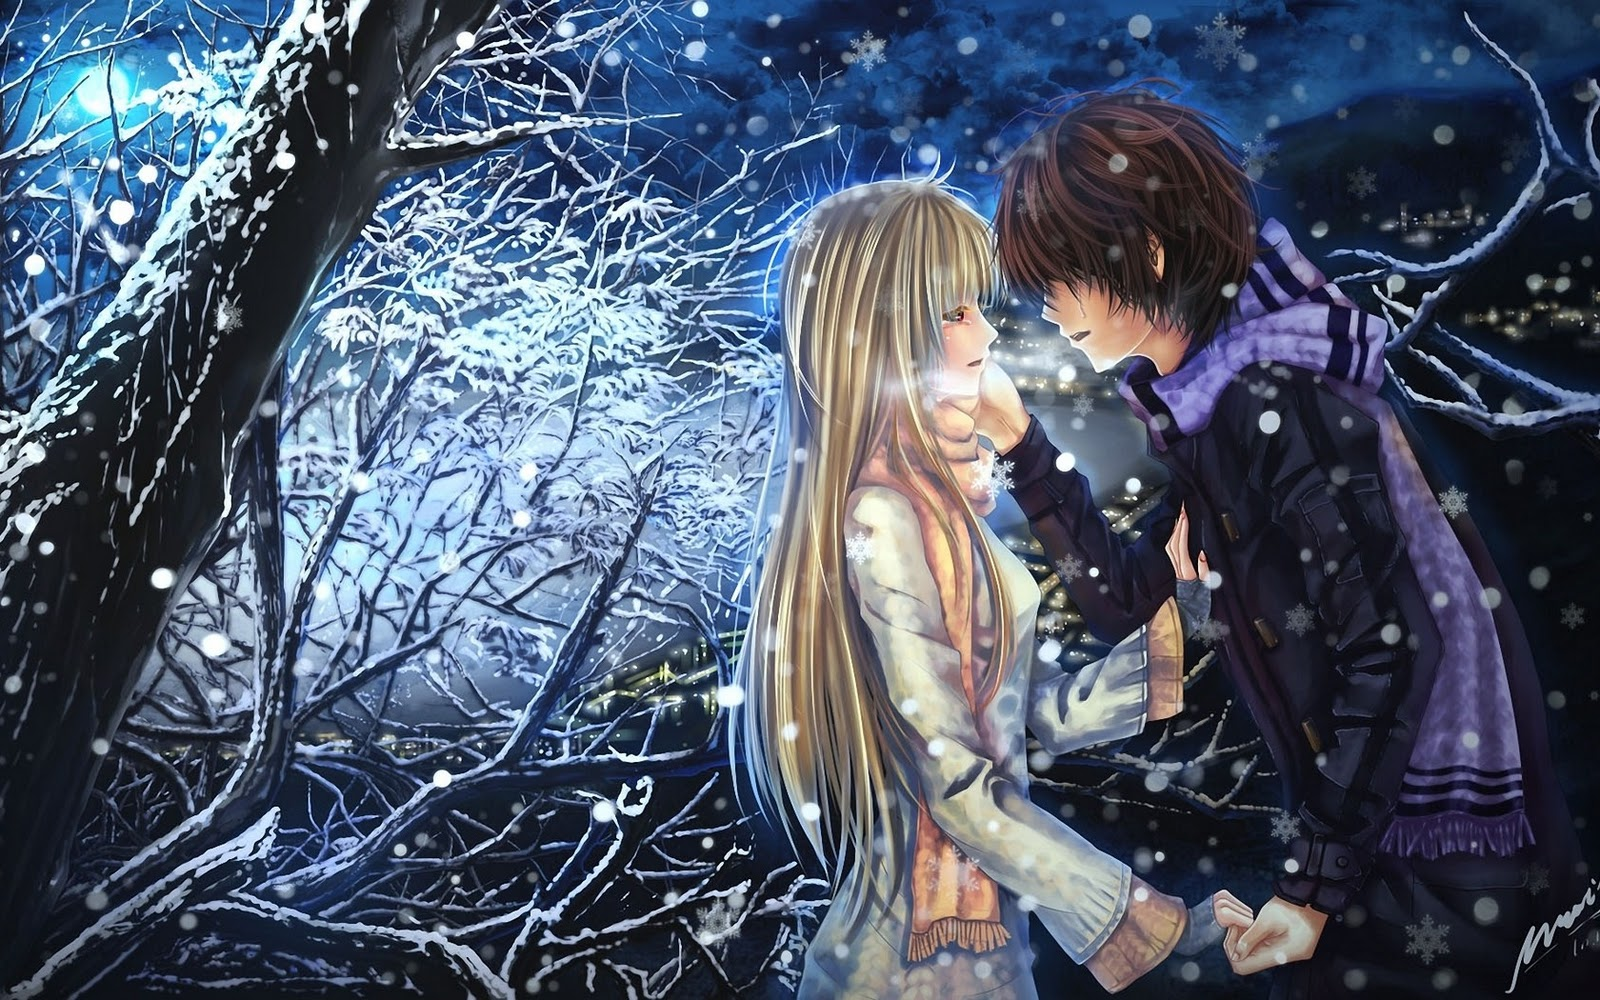 Nature Love couple Wallpaper : A2Z Wallpapers: Anime couples In Love Wallpapers